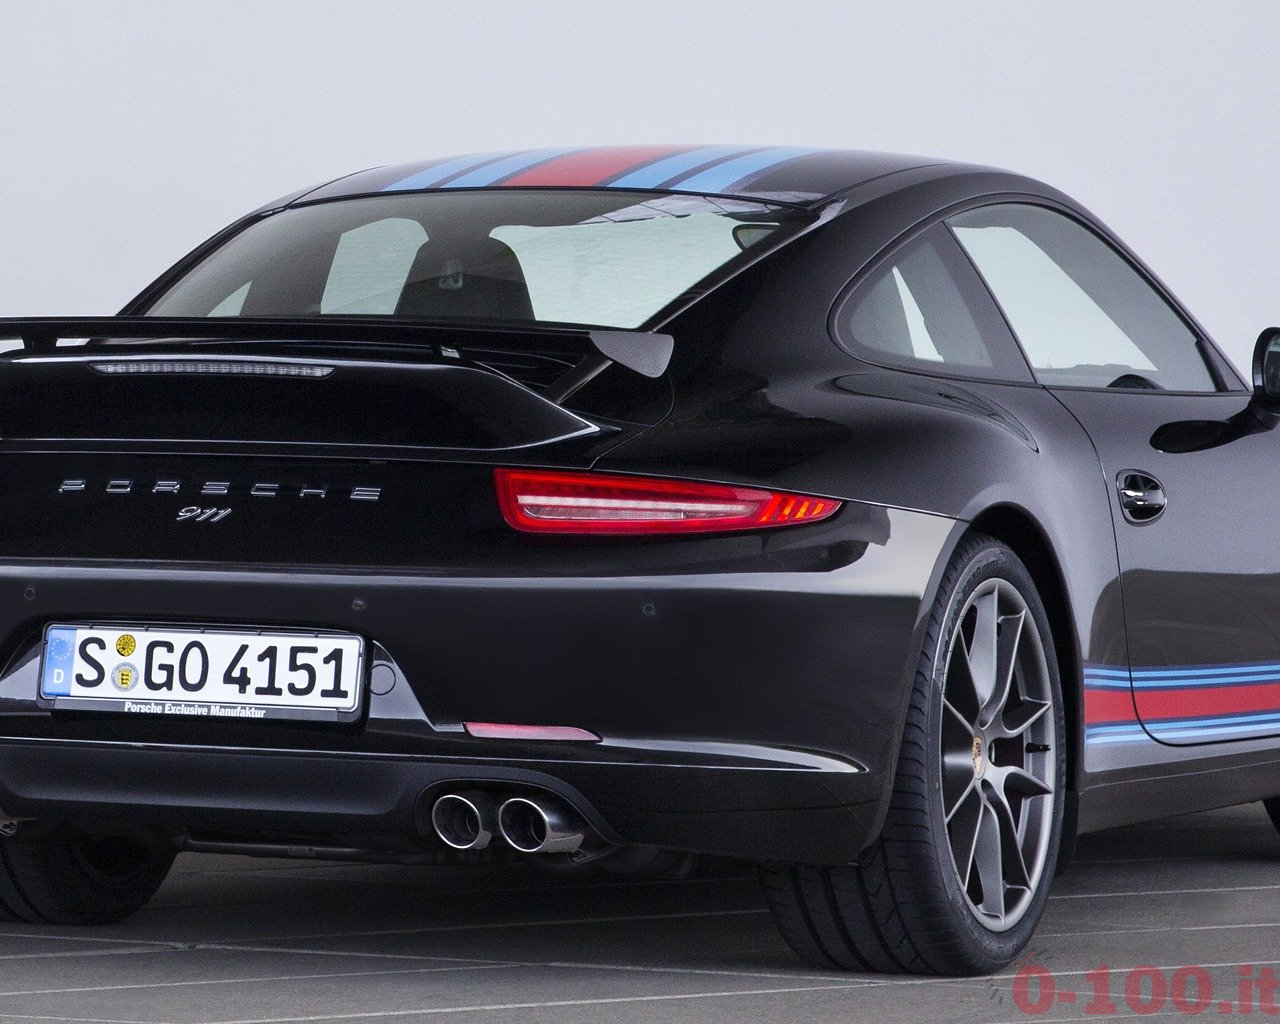 porsche-911-991-carrera-s-martini-racing-edition-0-100_7